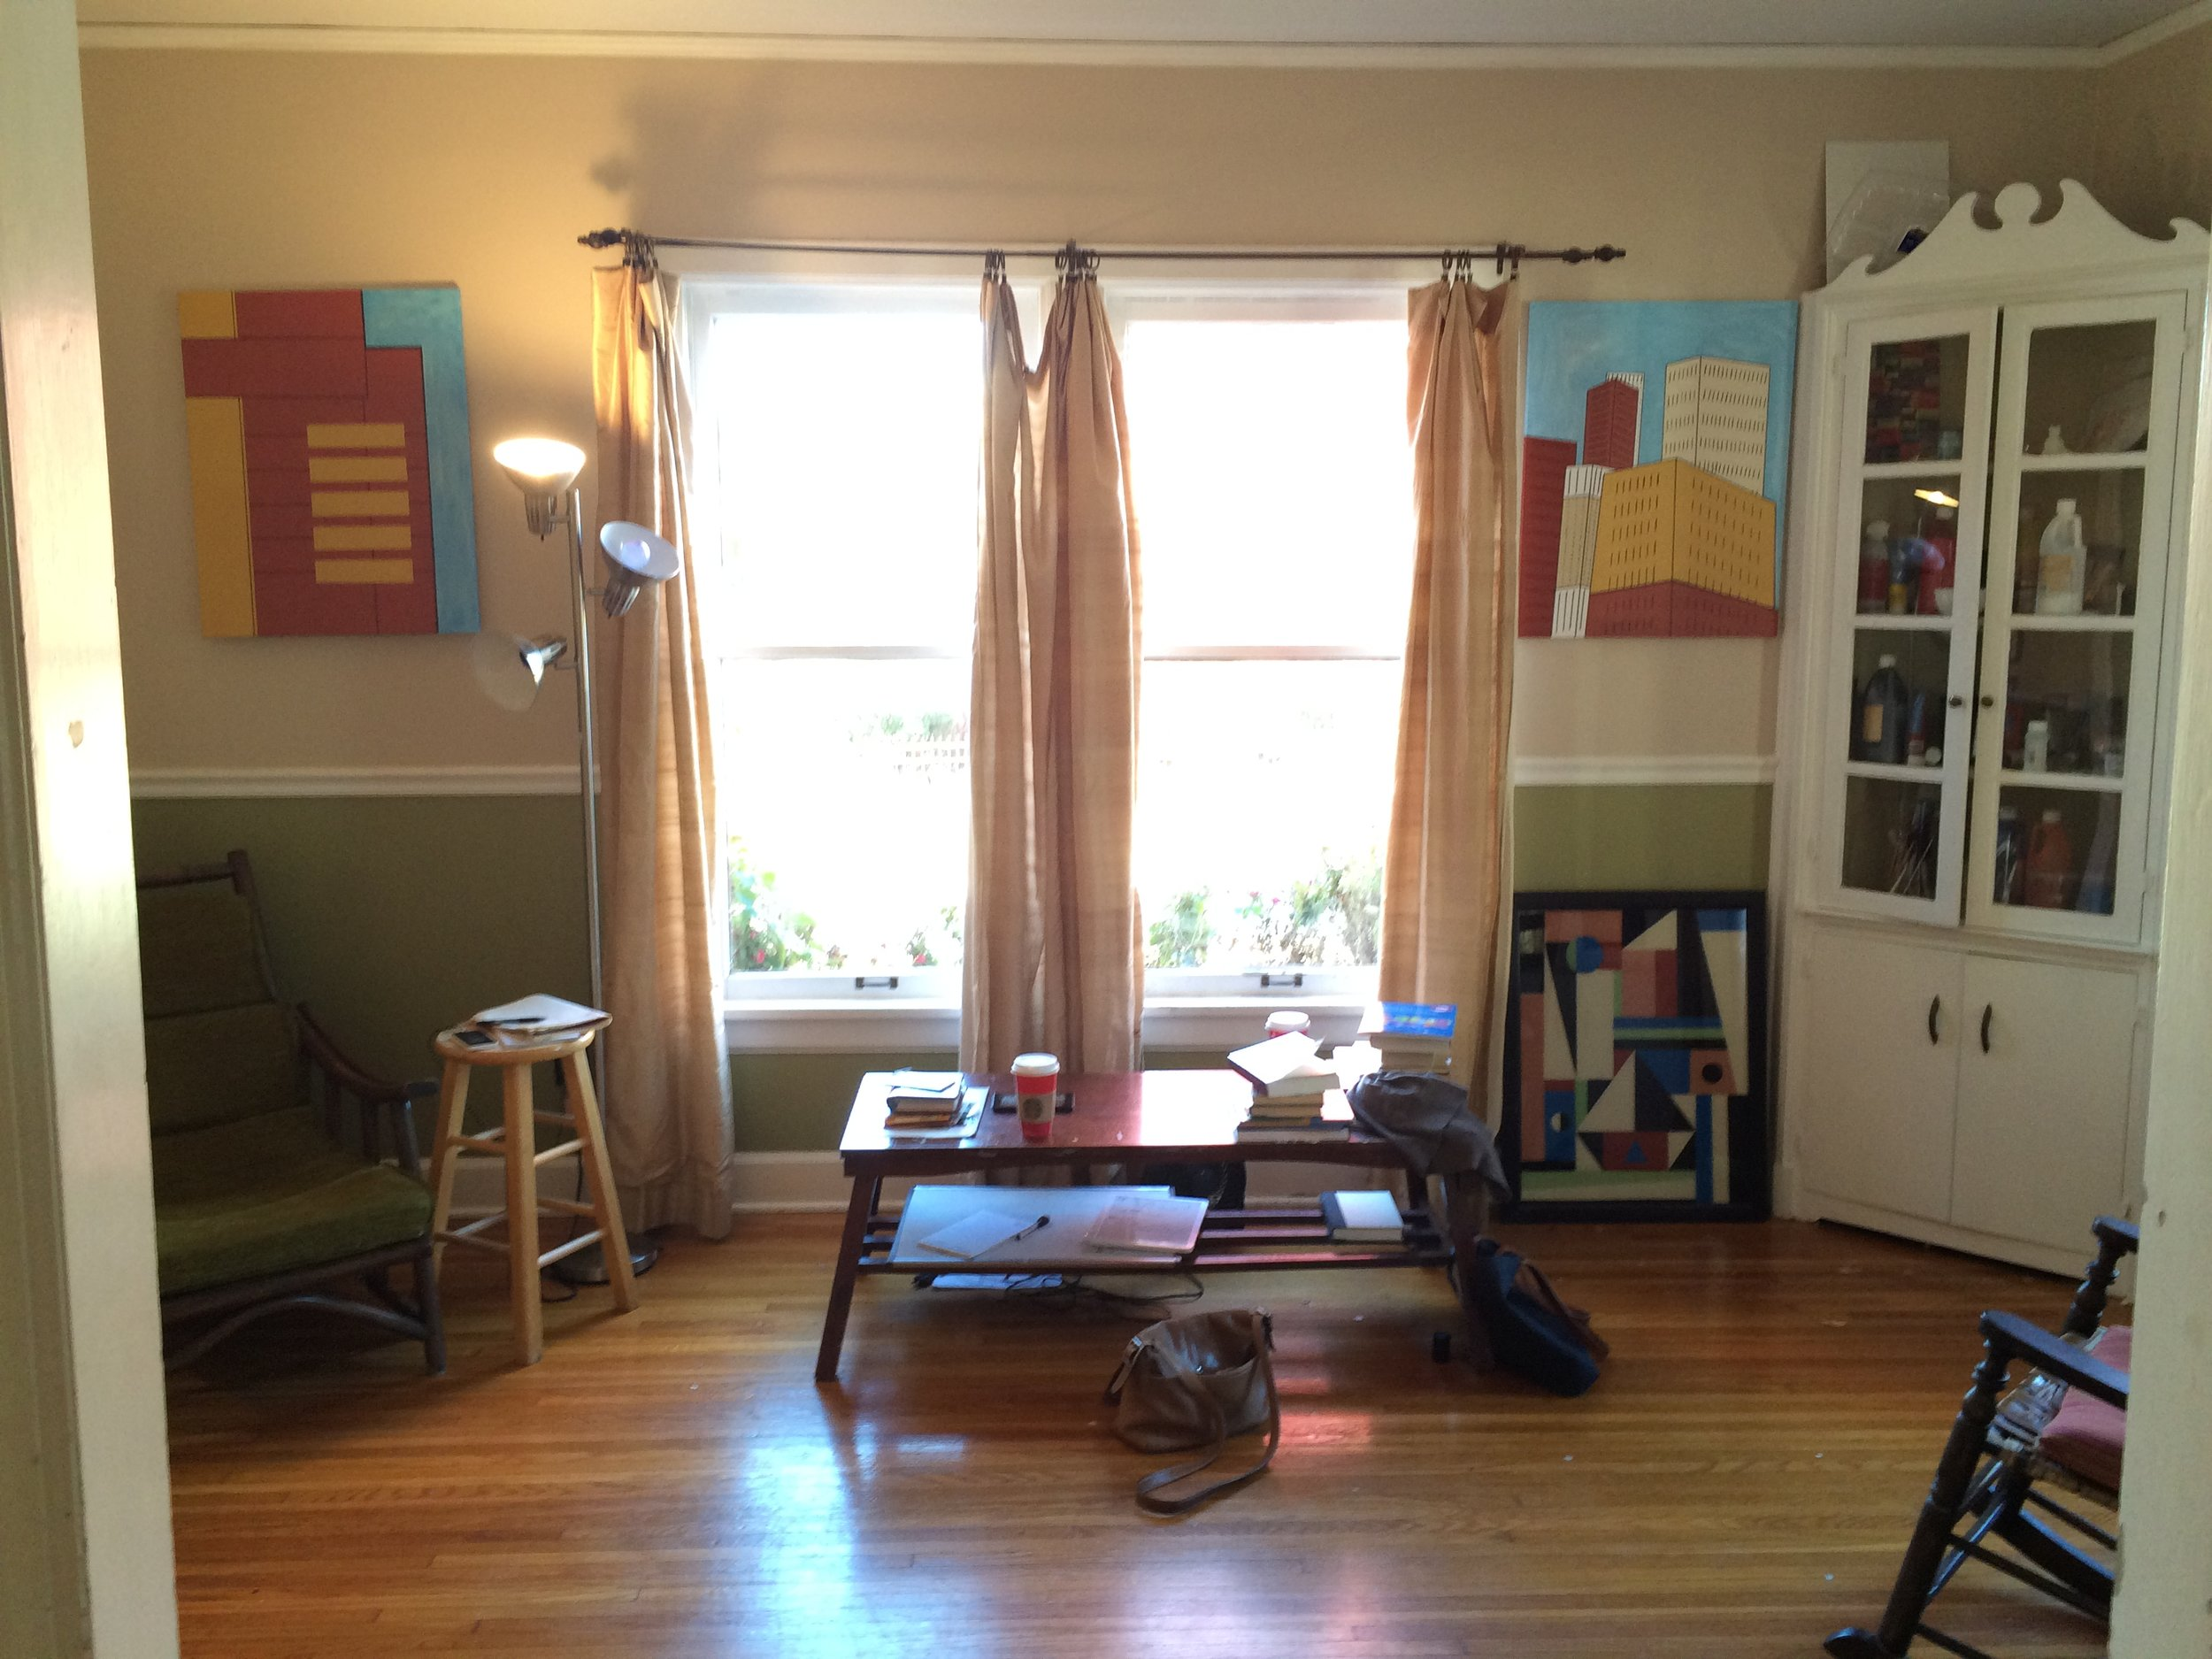 Our client's sunroom before decluttering